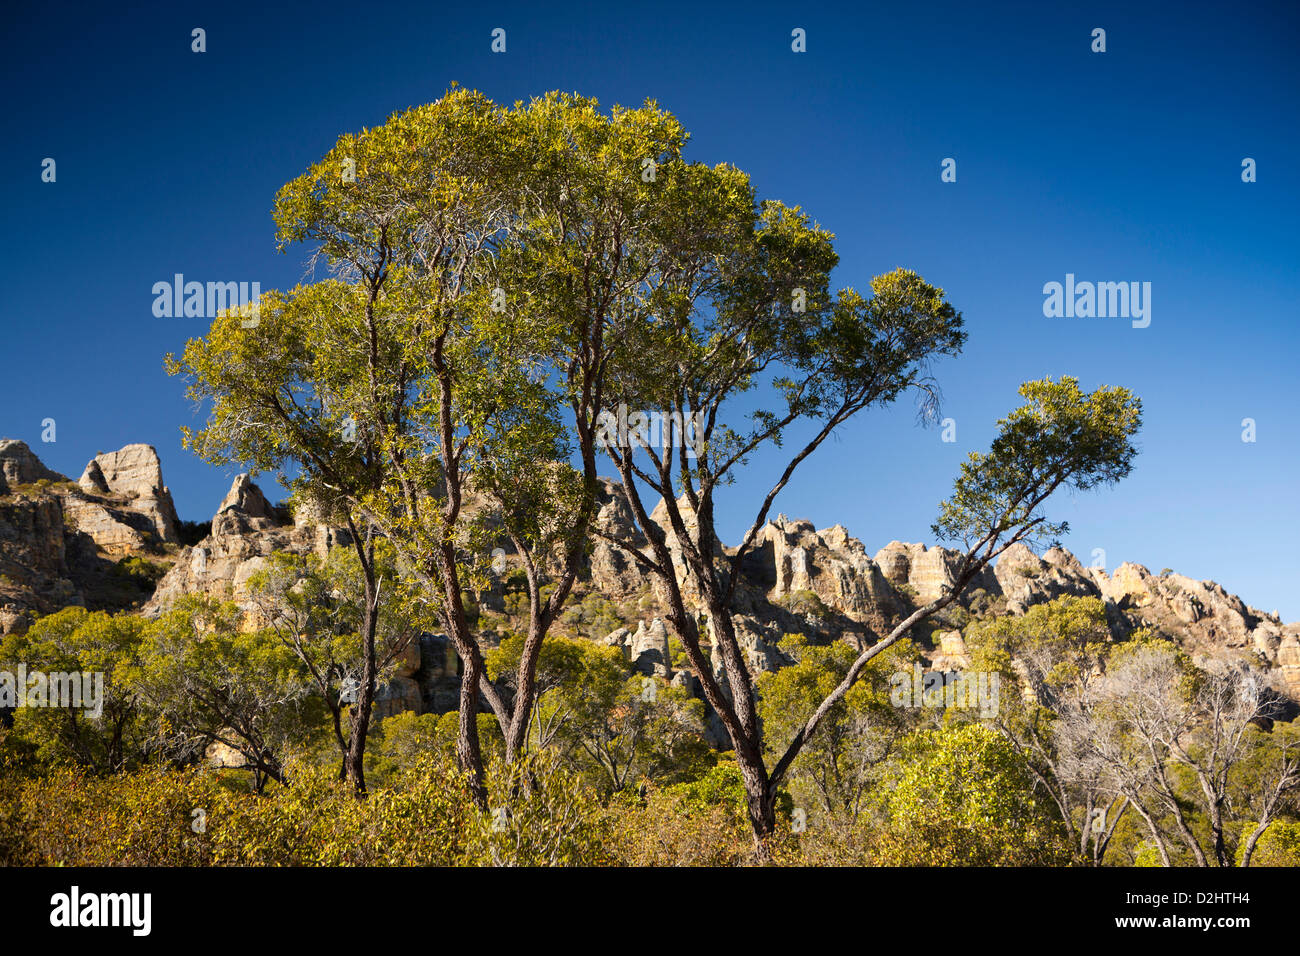 Madagascar, Parc National de l'Isalo, green trees growing on central plateau Stock Photo